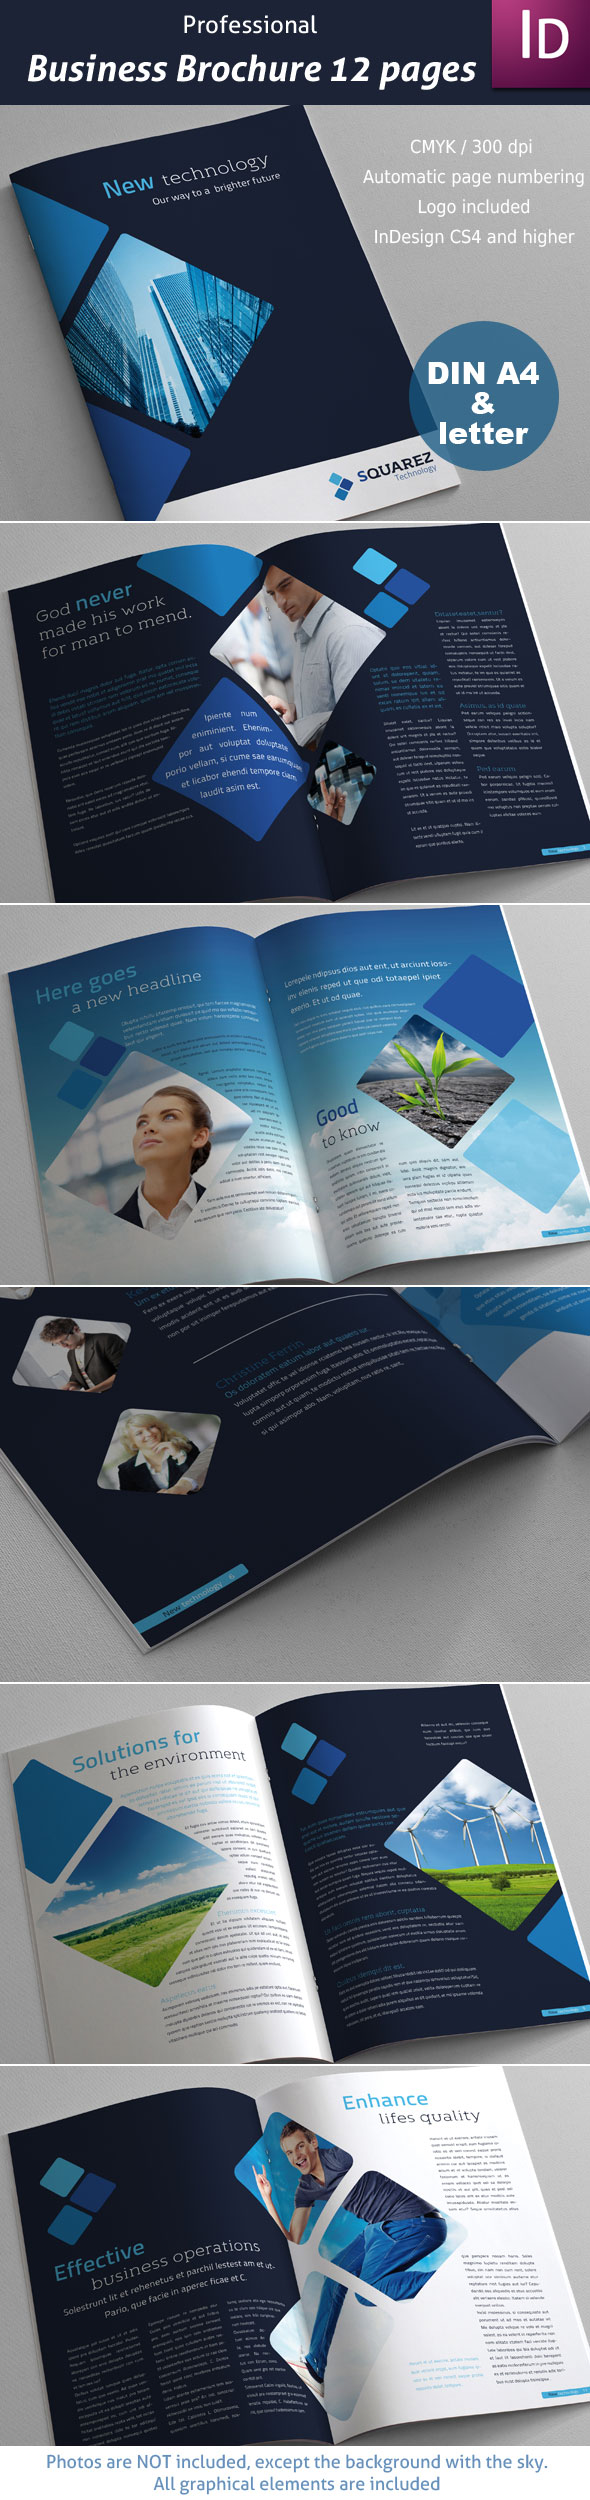 Business Brochure 12 pages by imagearea on deviantART I love how the shape is carried throughout